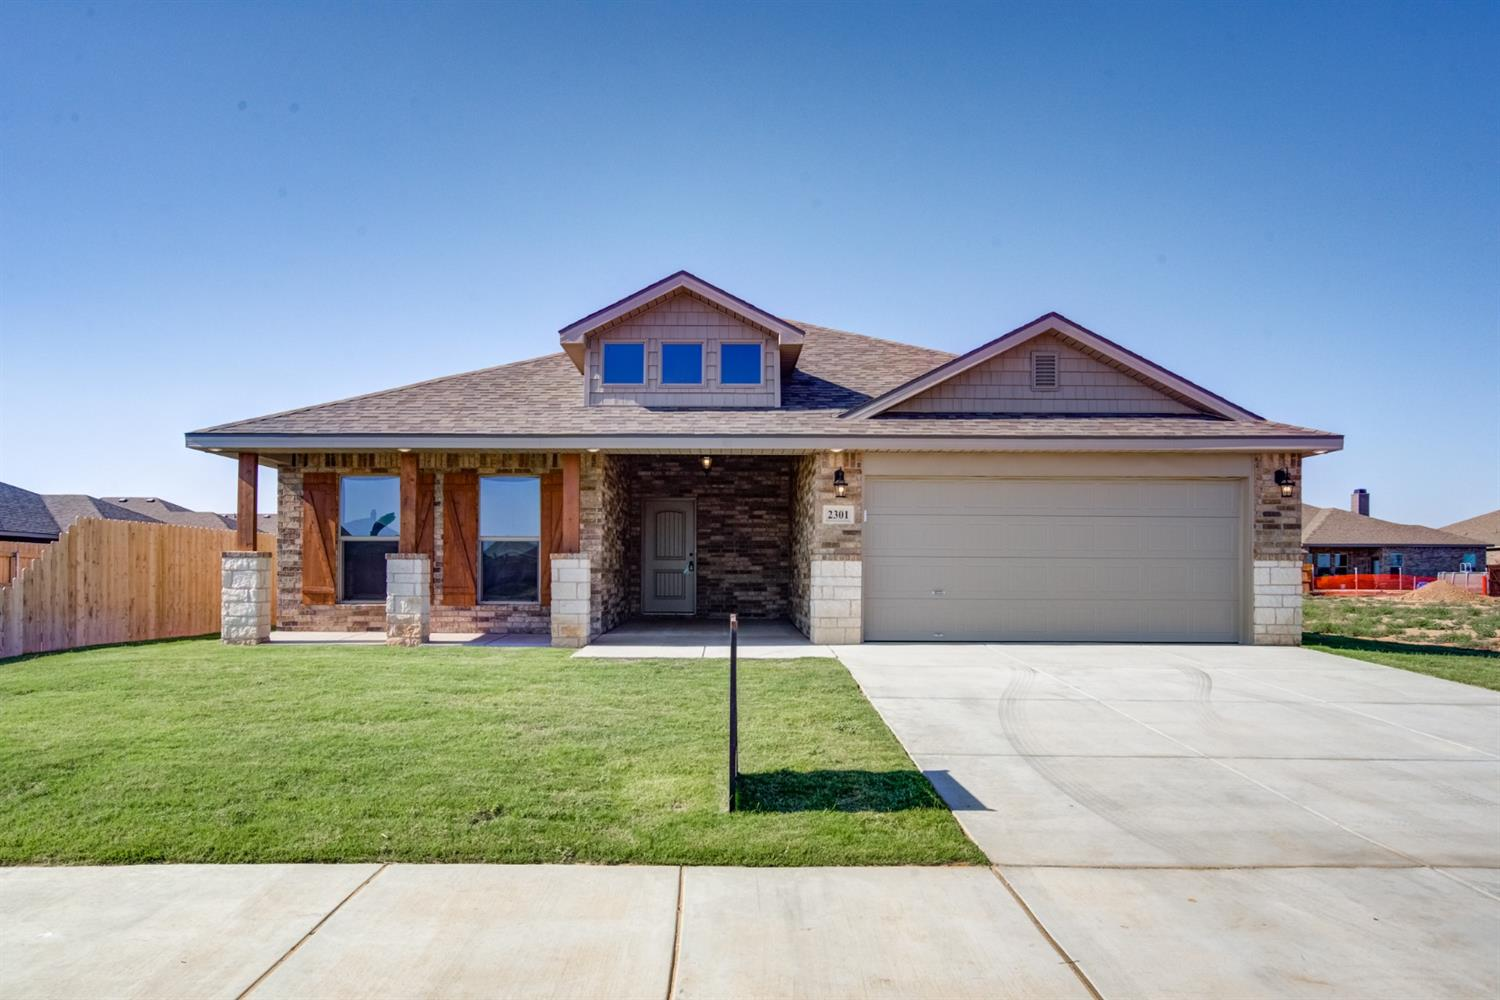 Come check out this gorgeous 4/3/2 located in Bell Farms. This home will take your breath away with all of the beautiful updates!